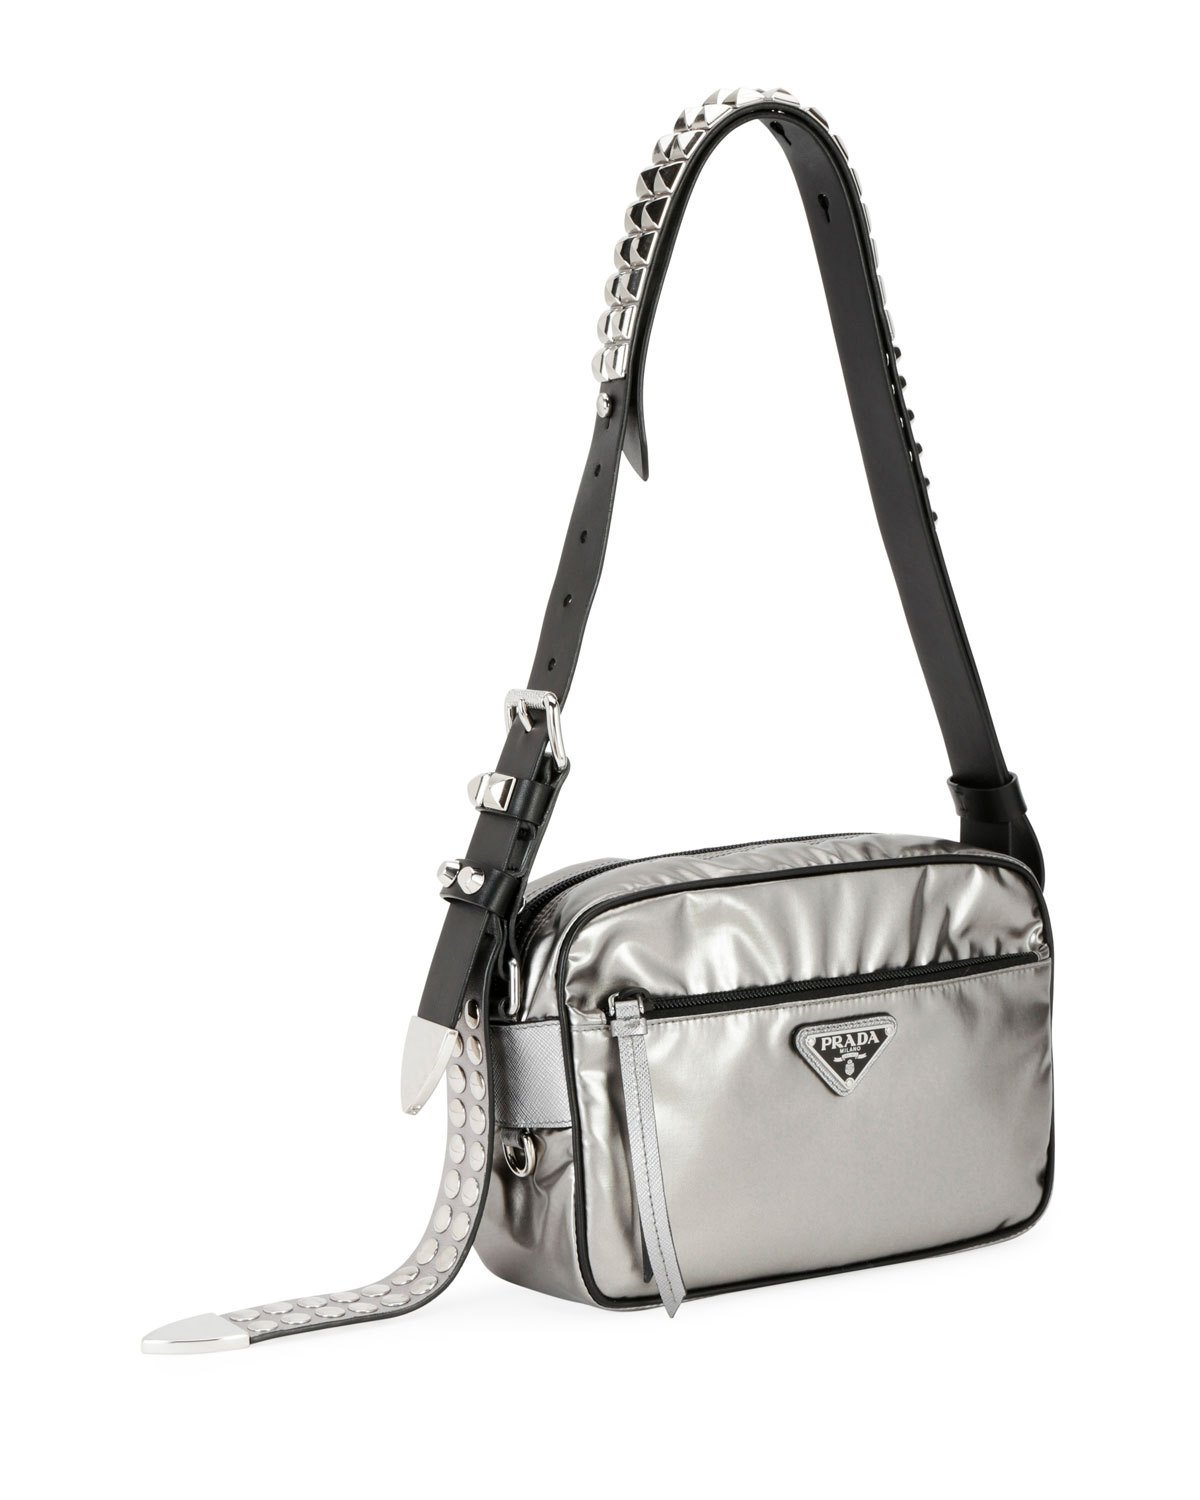 7bccc4d4c58 Prada Small Metallic Nylon Shoulder Bag with Studded Leather Strap